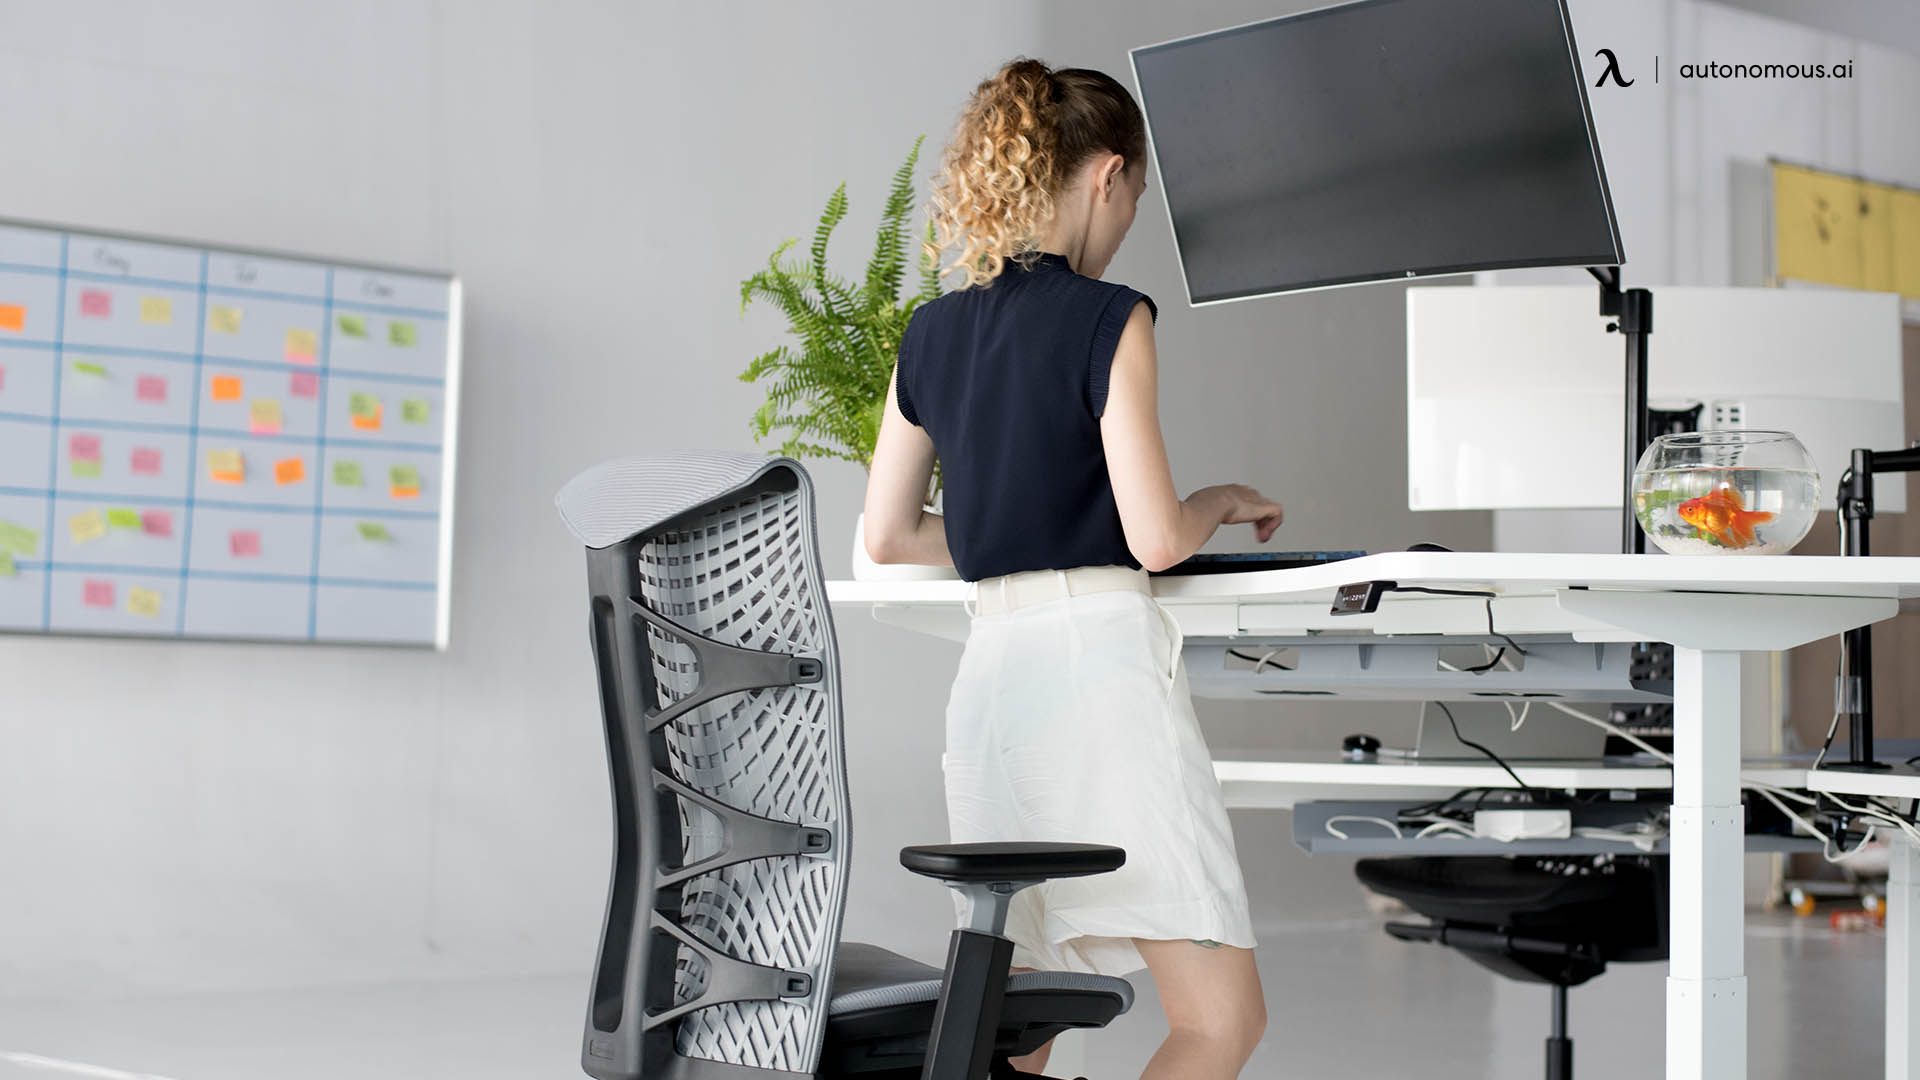 The Method: How To Stand While Working